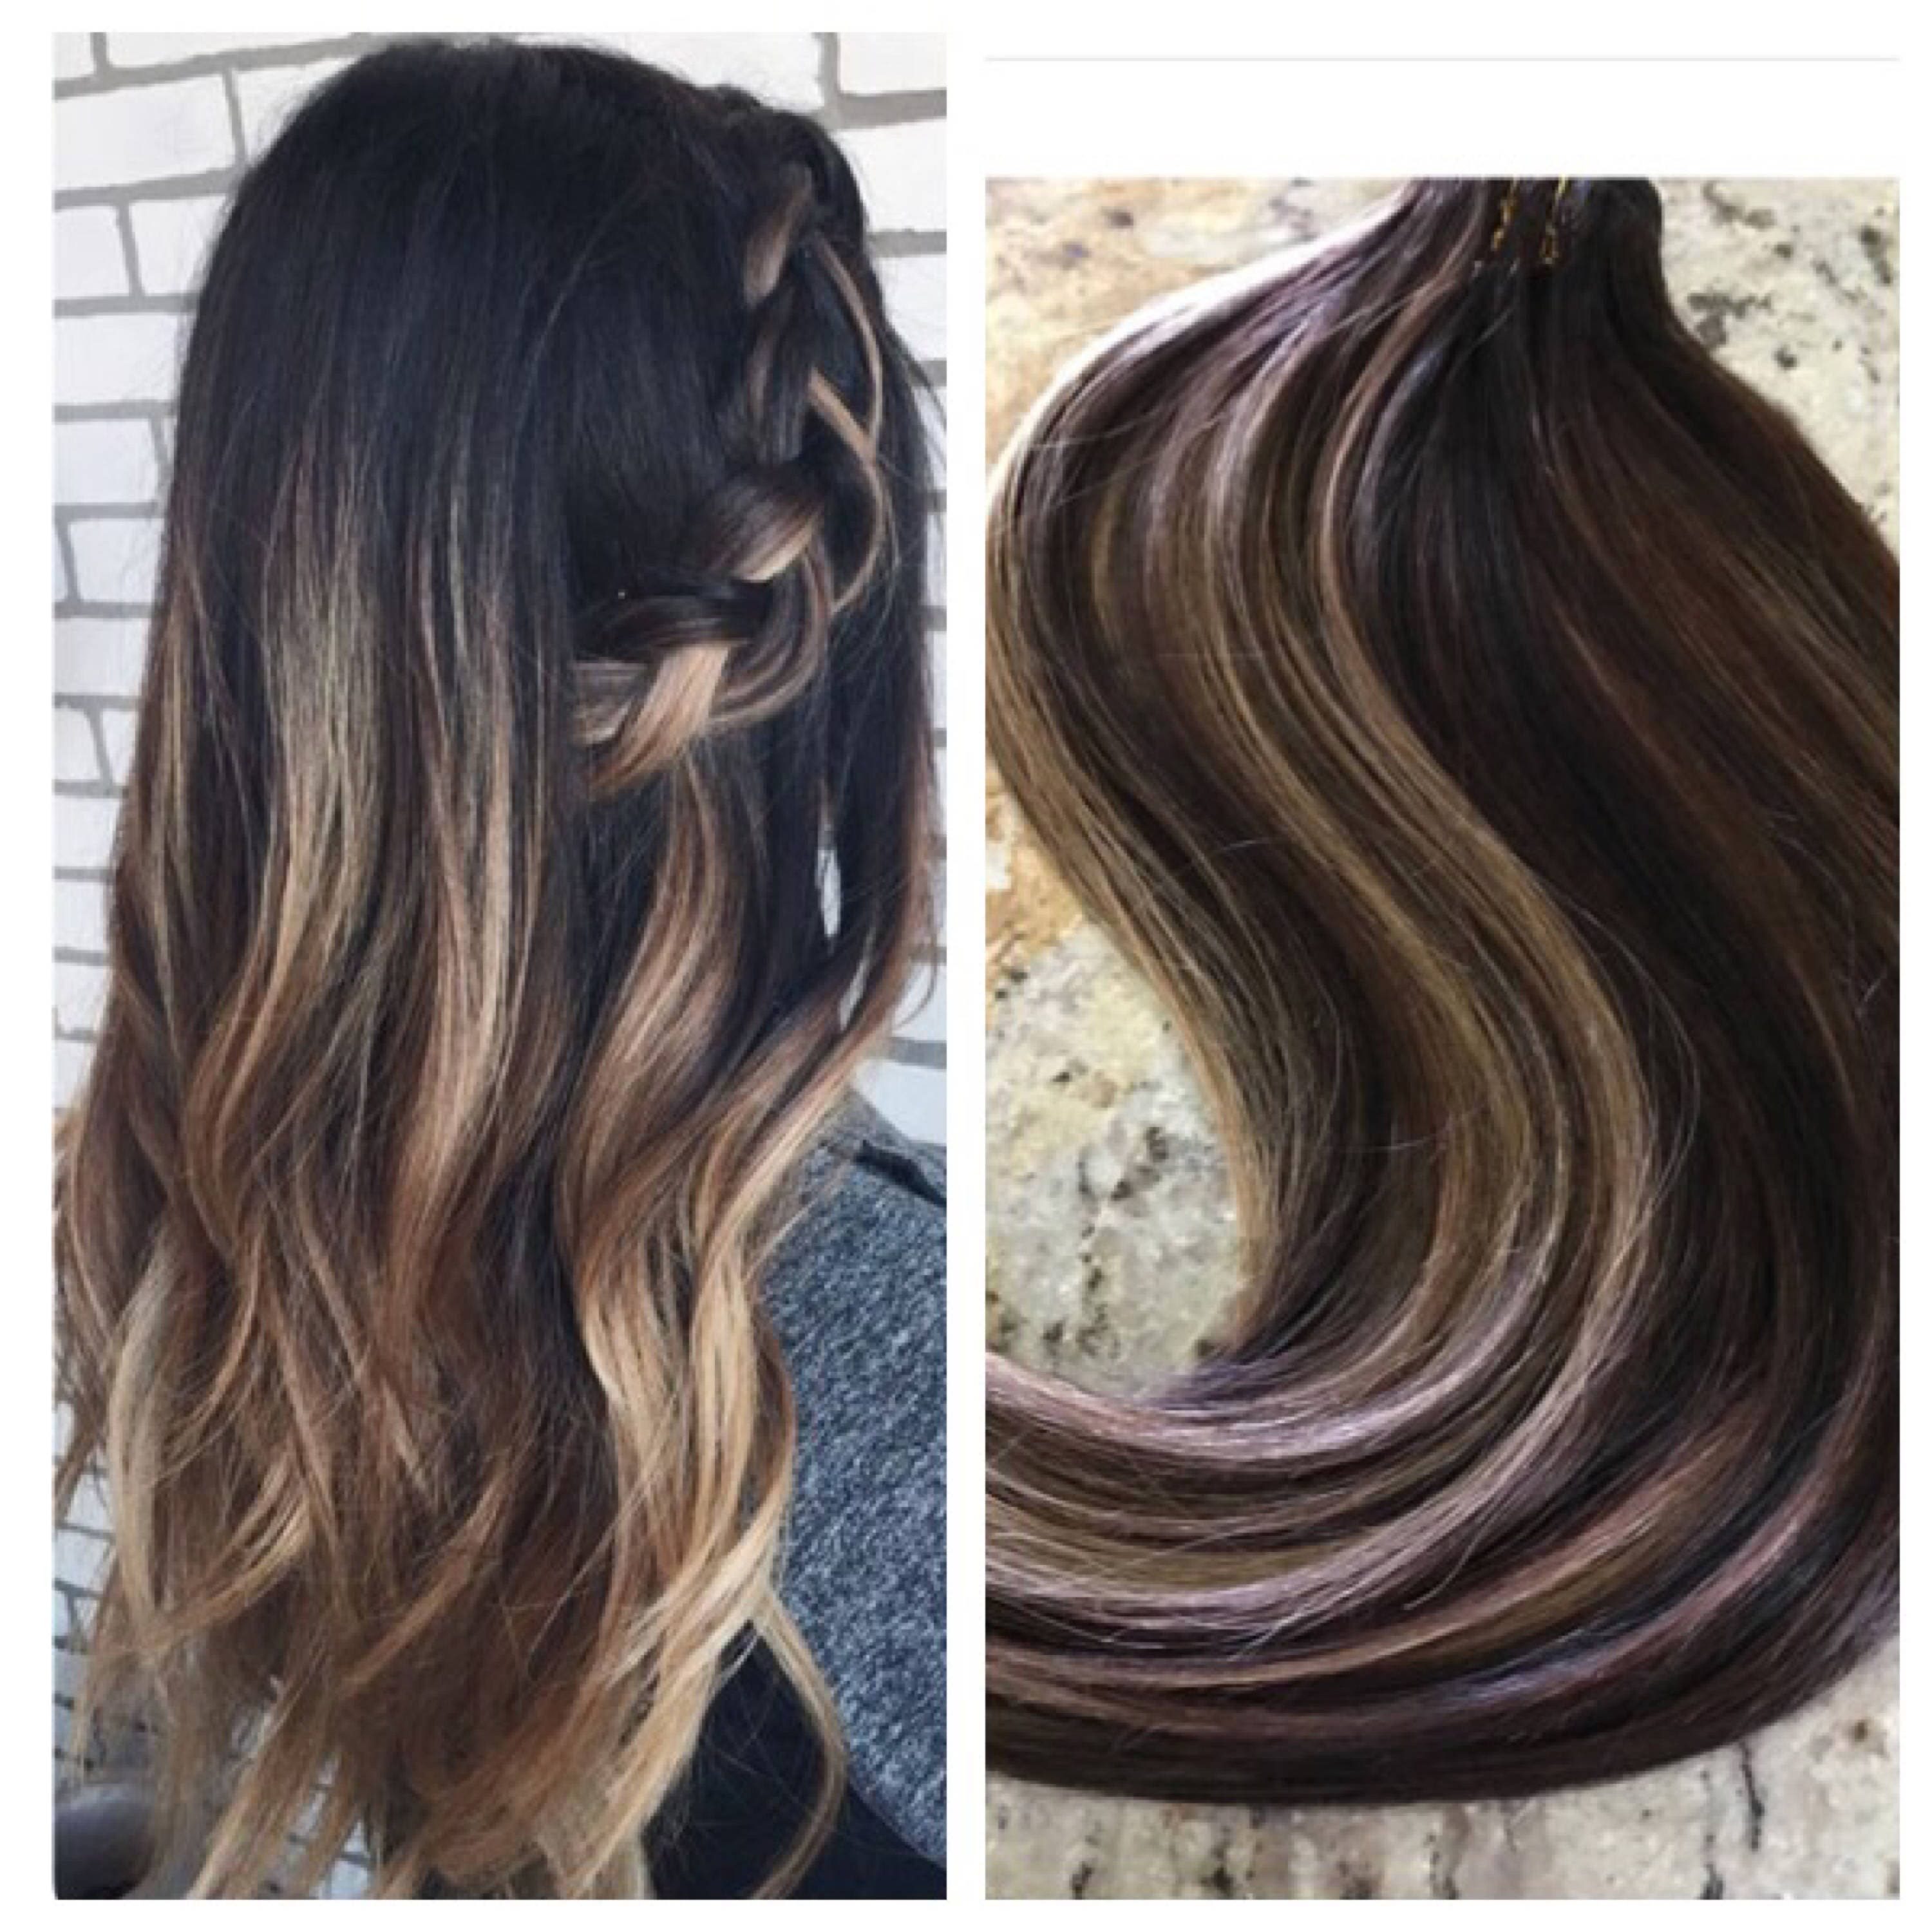 5 star ombre cuticle european remy human hair double wefted 5 star ombre balayage cuticle remy human hair sew in machine weft hair extensions 1 bundle pmusecretfo Gallery